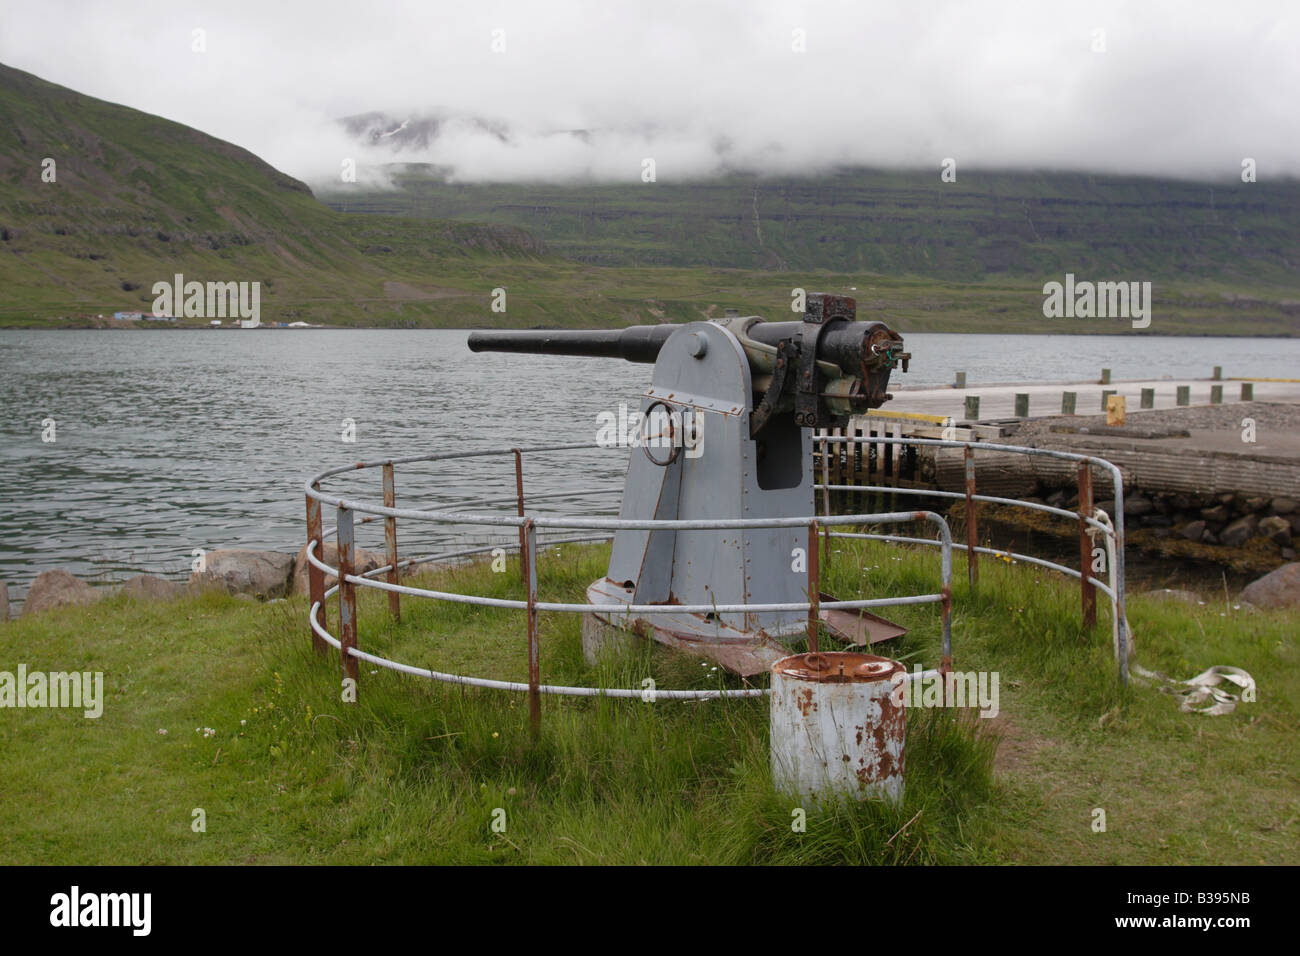 An old cannon in Seydisfjordur, Iceland. - Stock Image